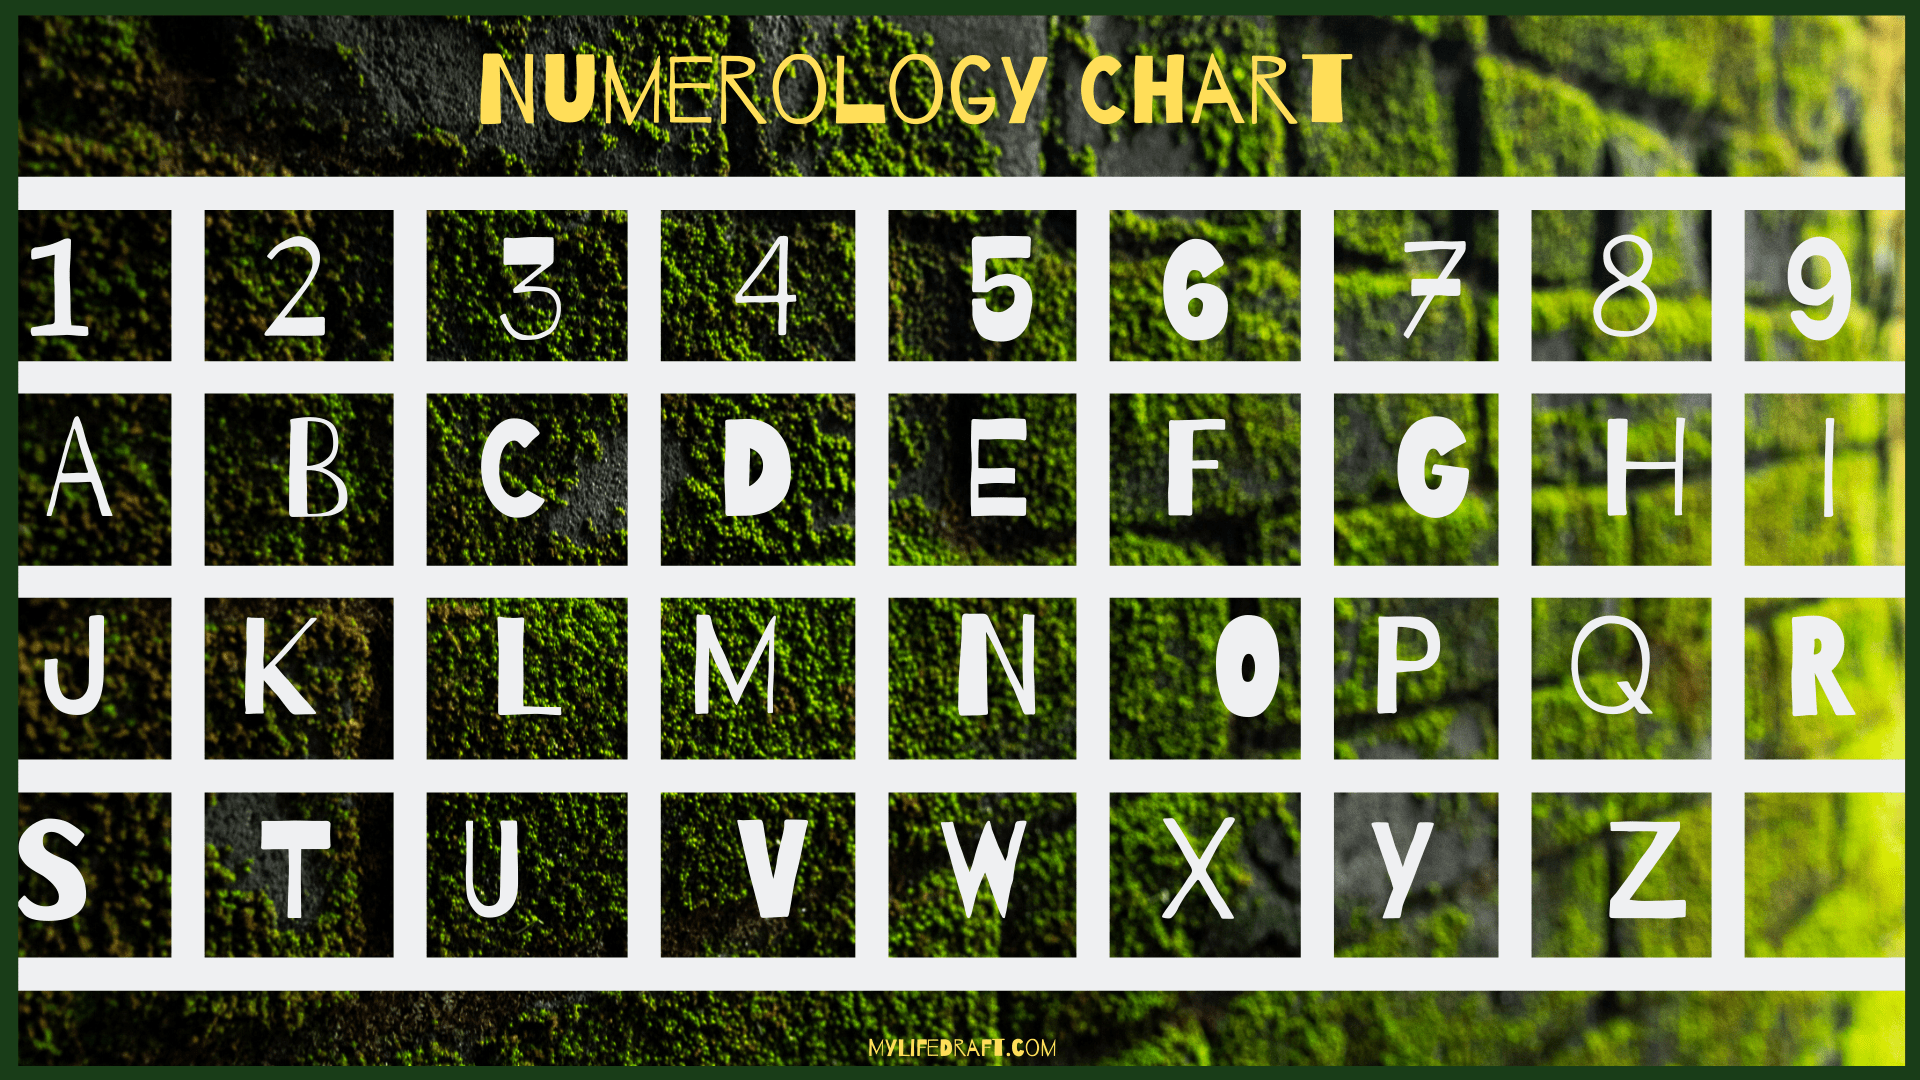 Numerology Chart and what it means in today's world